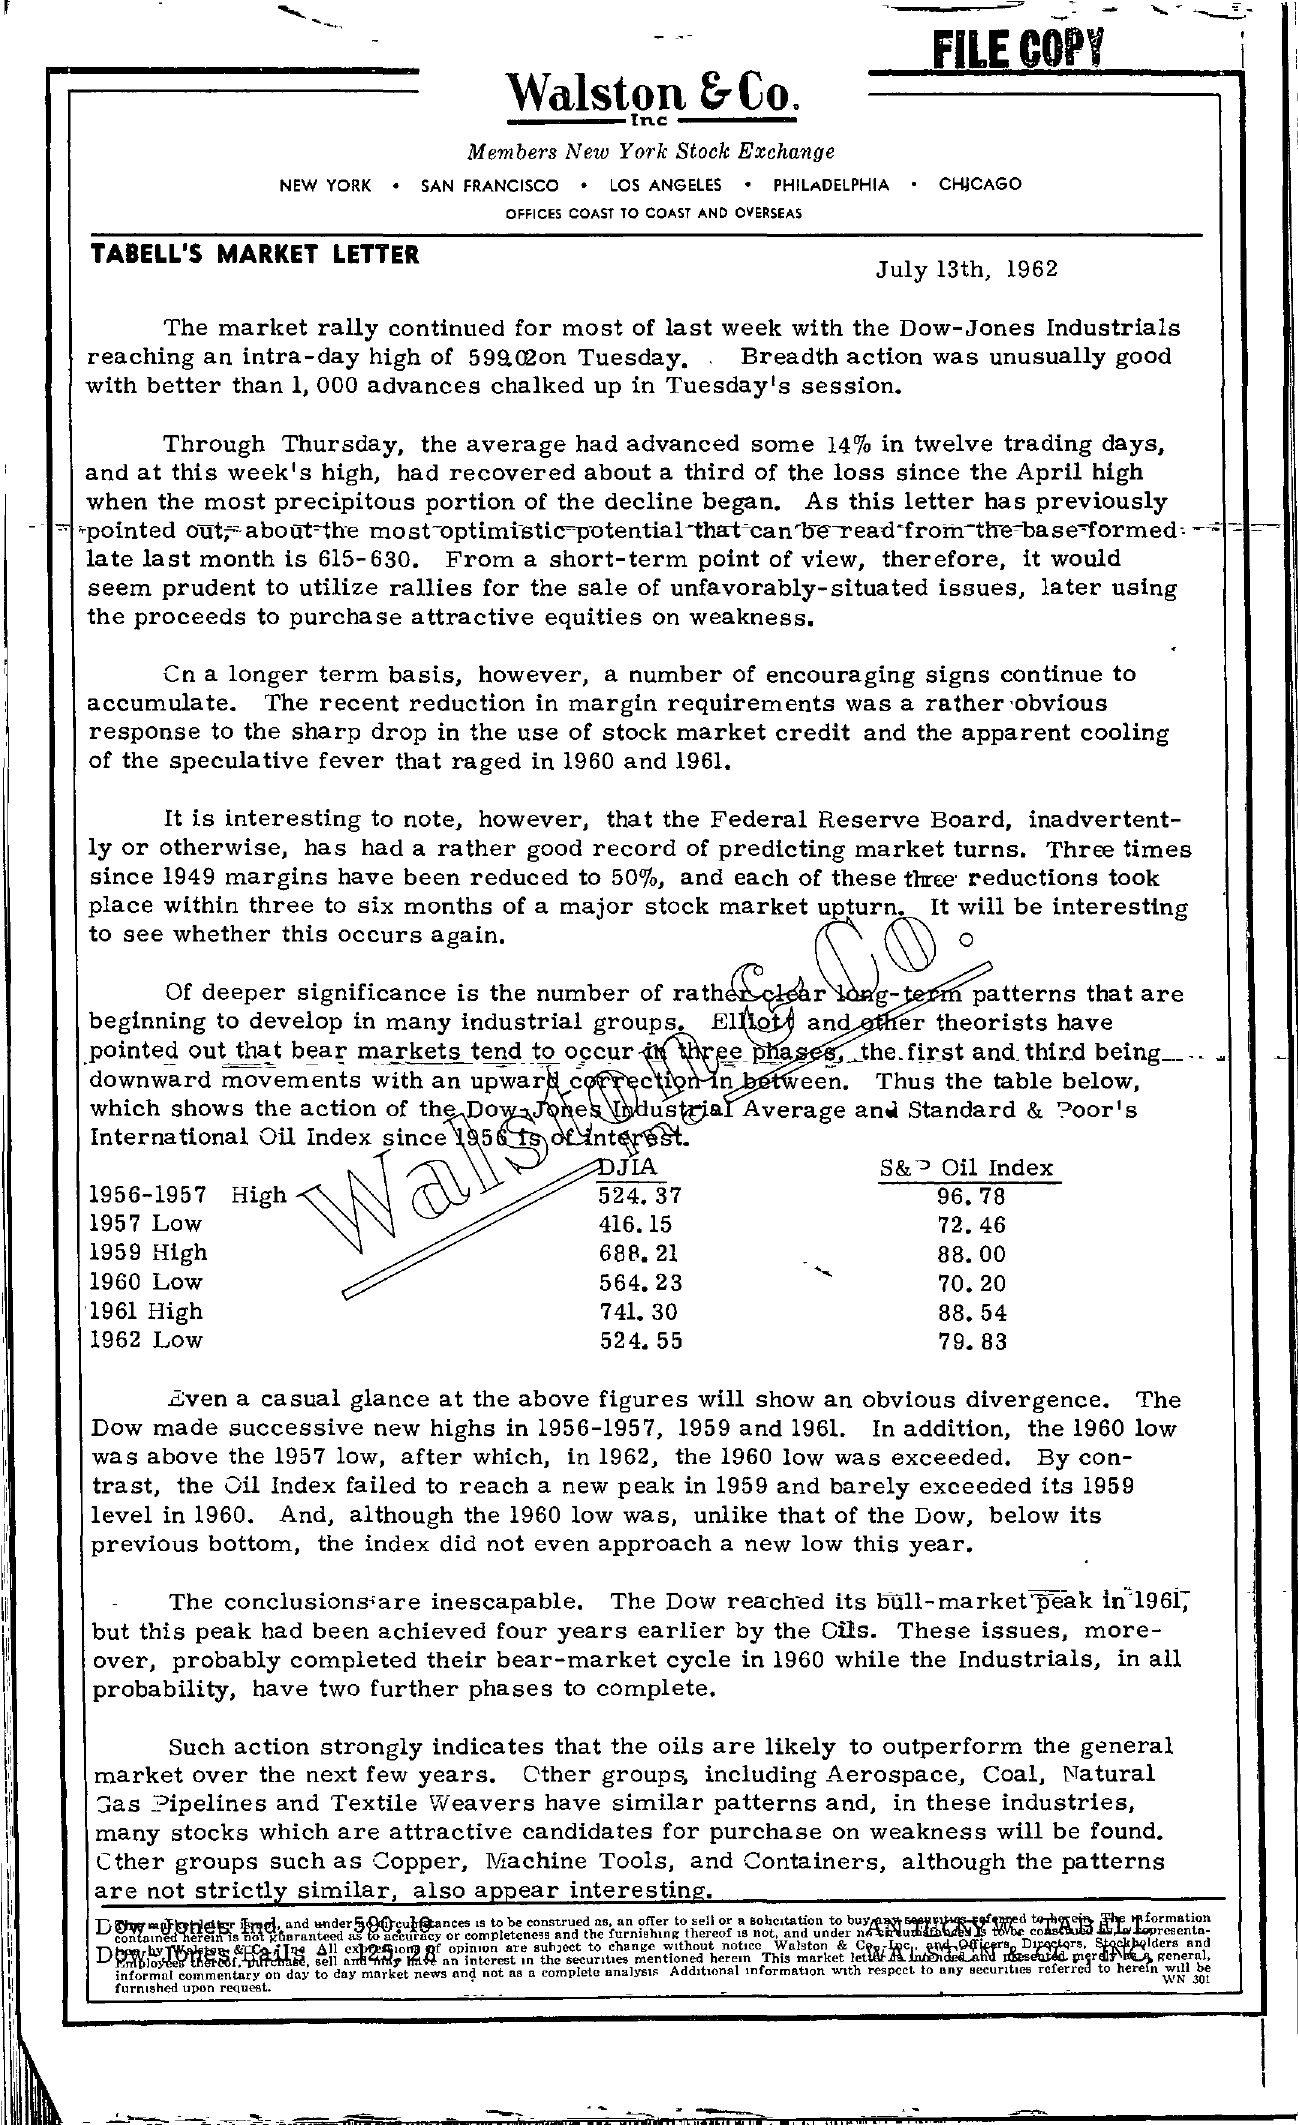 Tabell's Market Letter - July 13, 1962